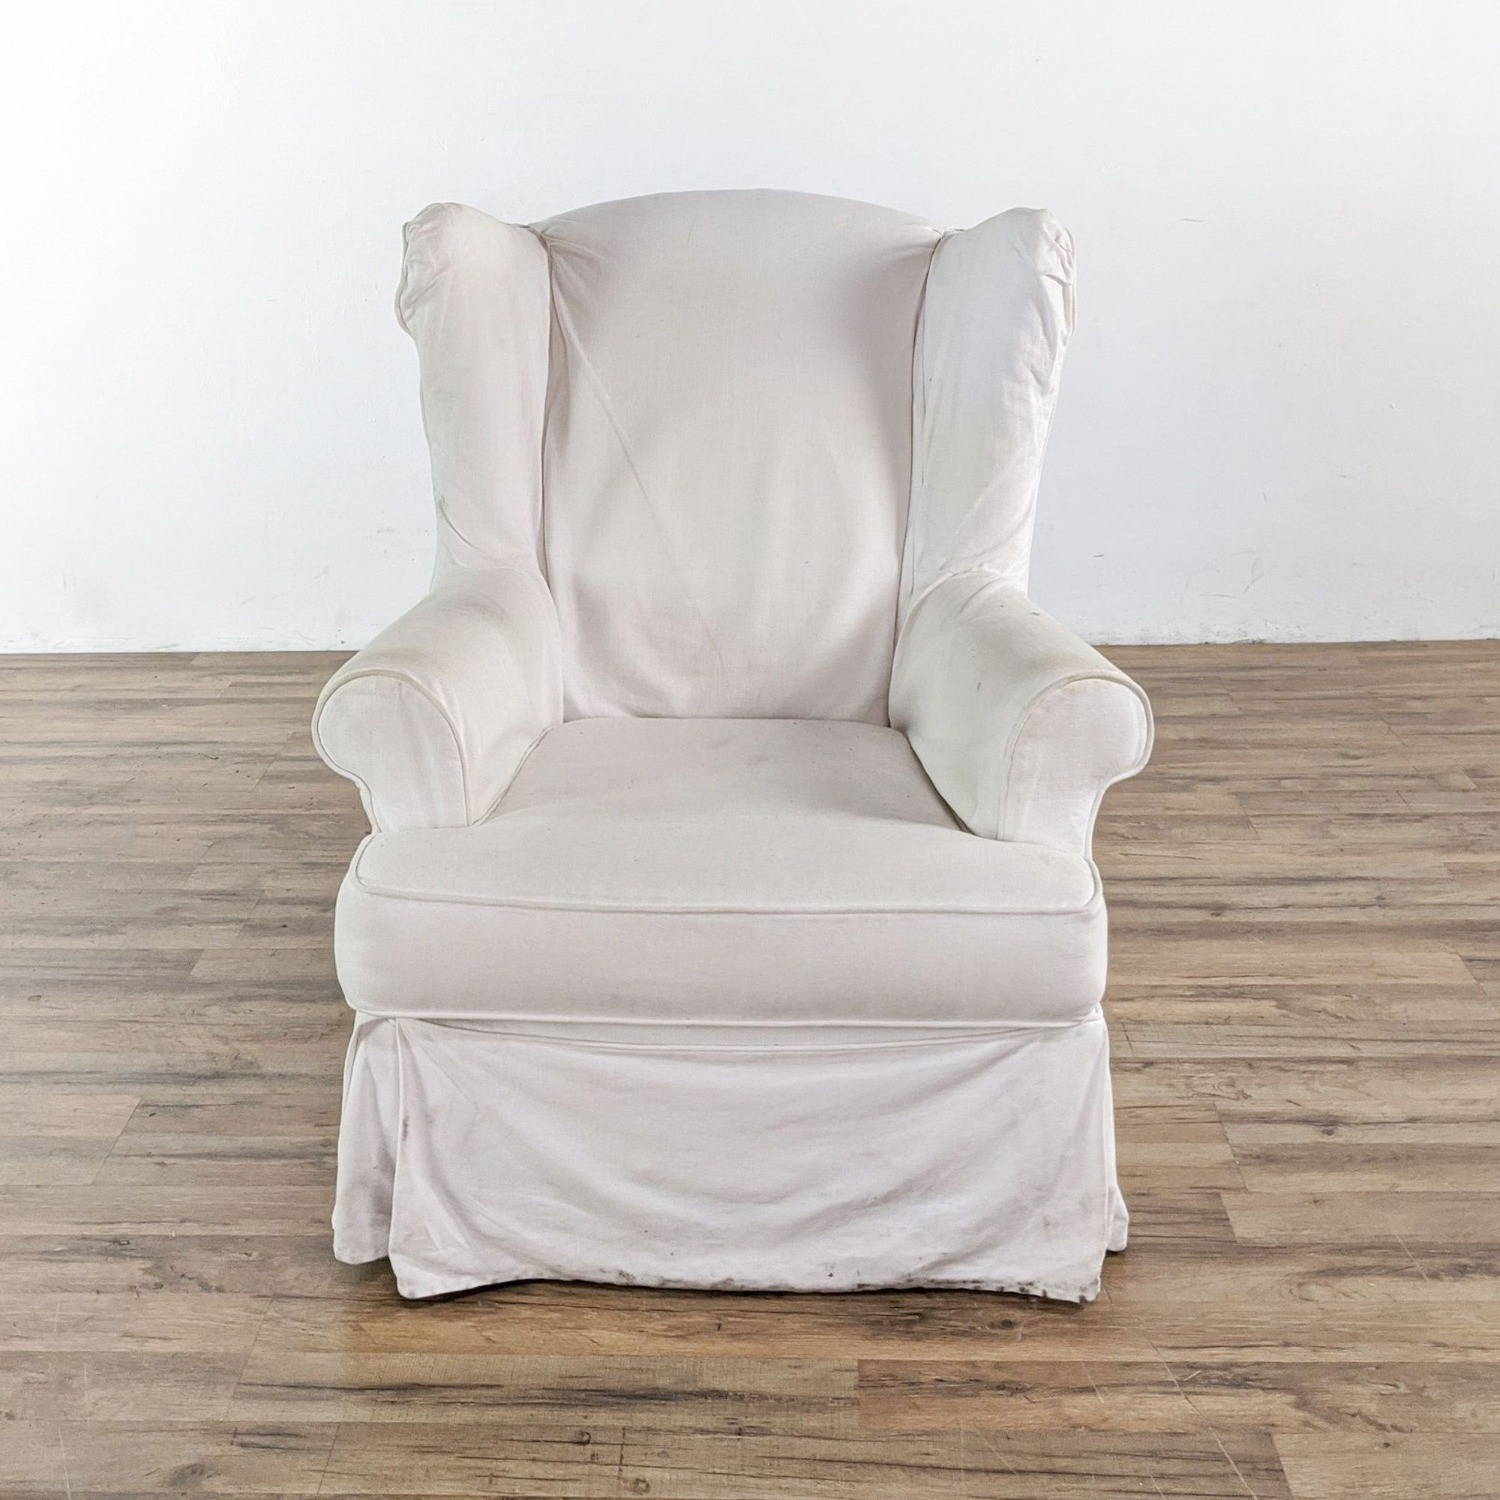 Pottery Barn Glider with Slip Cover - image-5